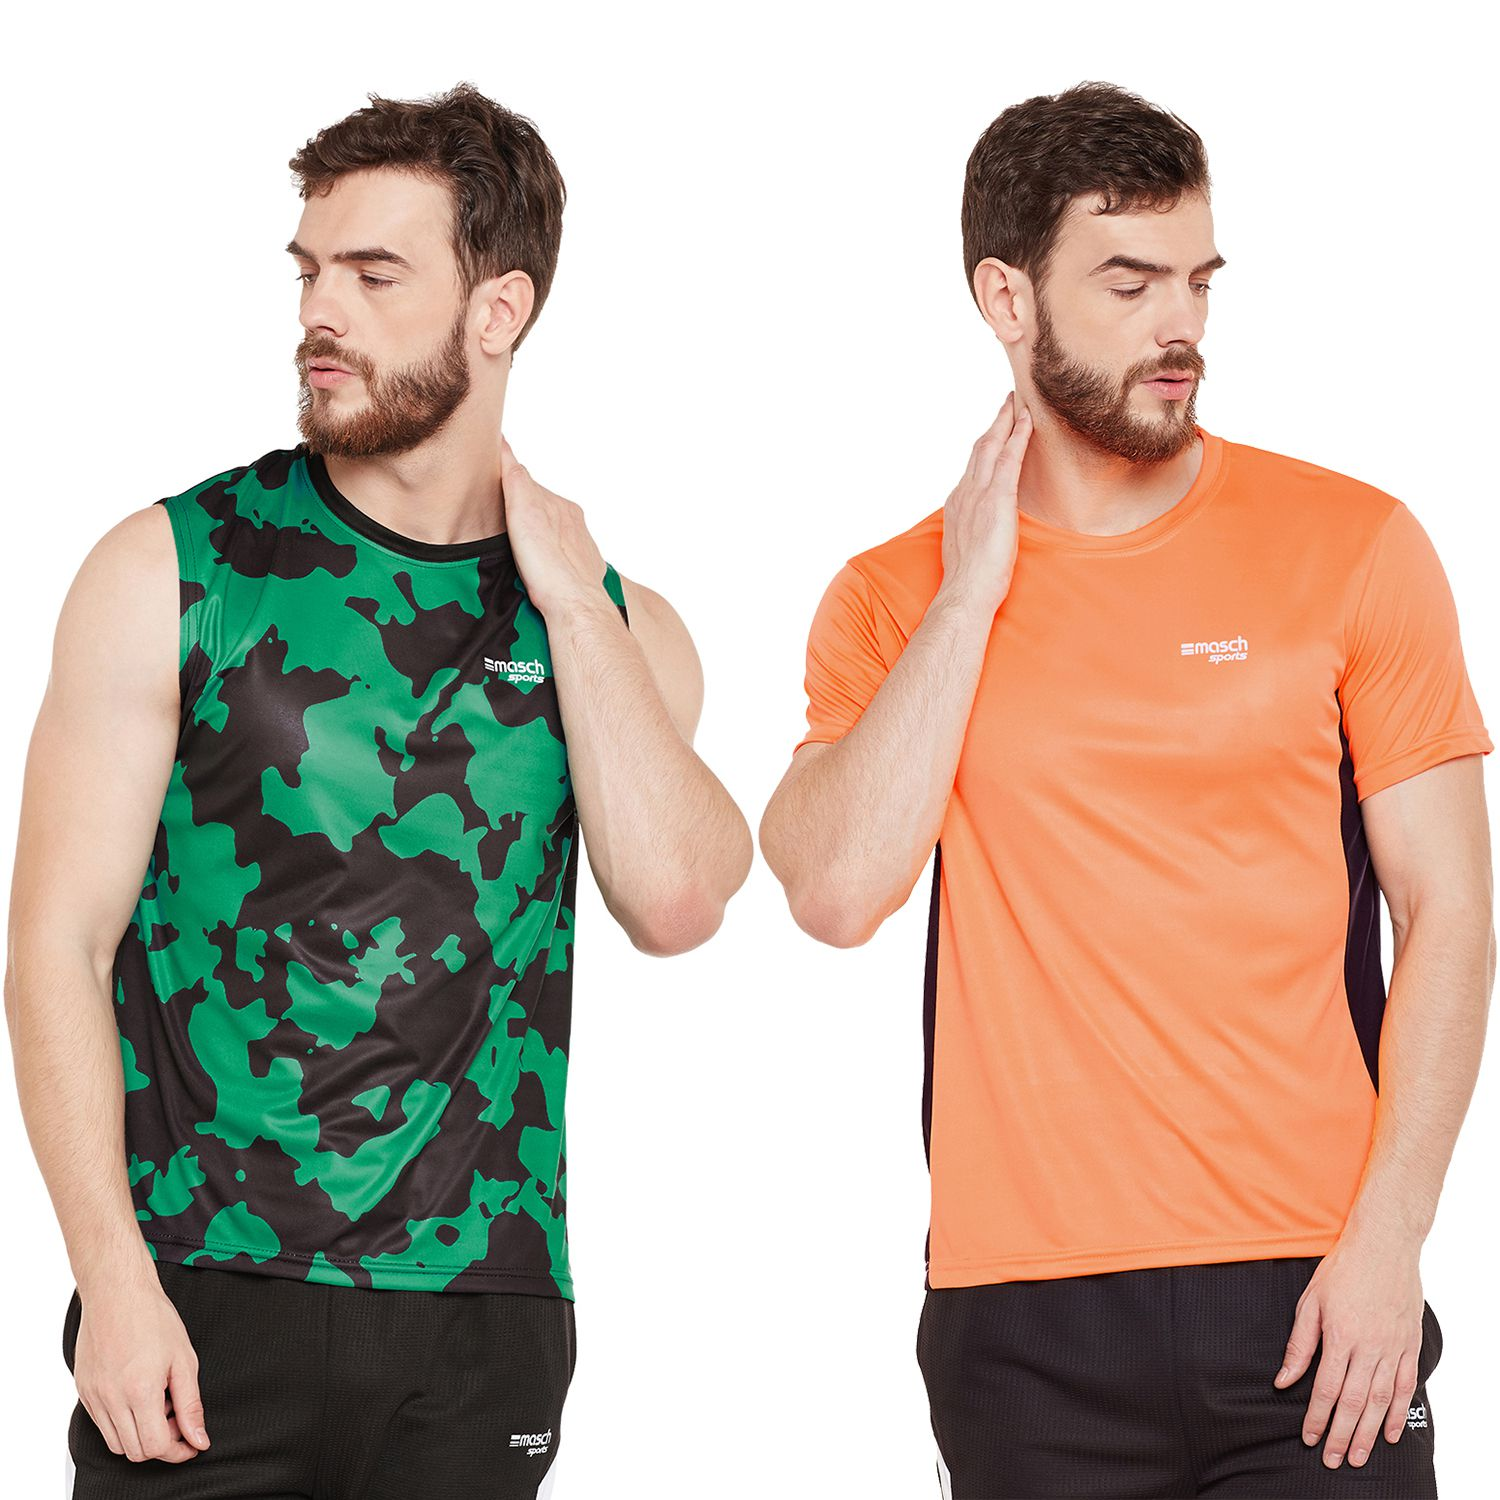 Masch Sports Multi Round T-Shirt Pack of 2